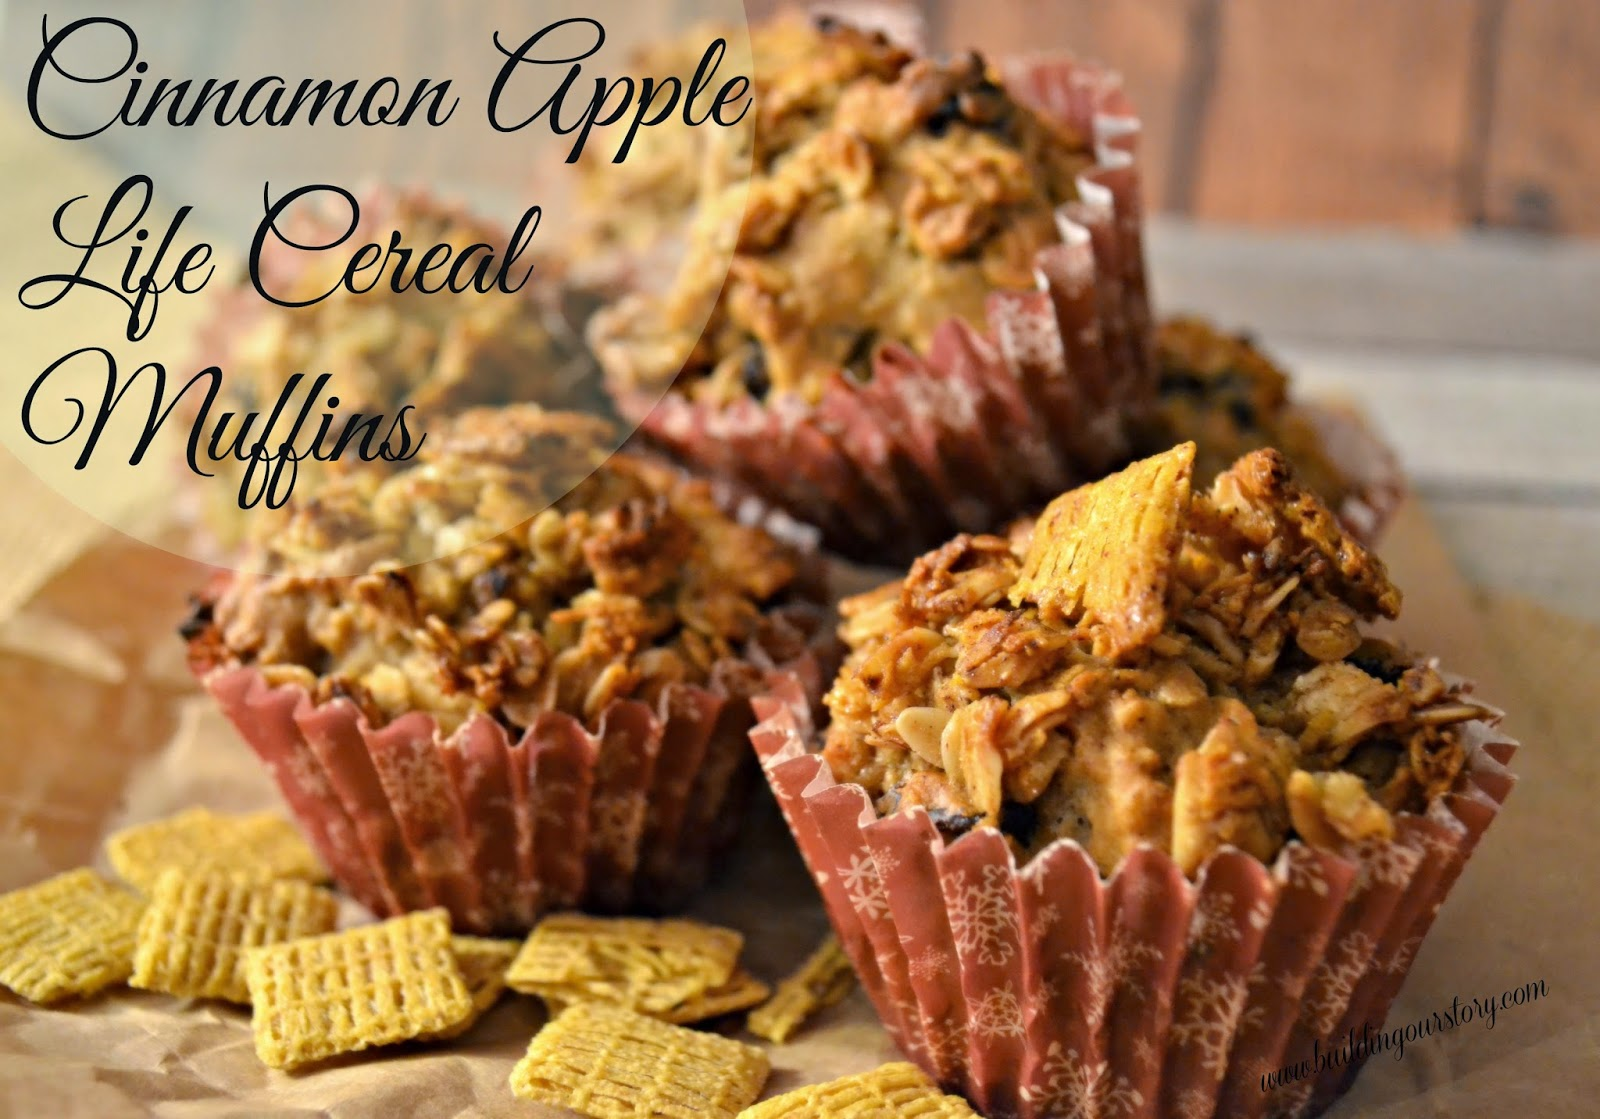 Cinnamon Apple Life Cereal Breakfast Muffins.  Cereal topped muffins.  Healthy Muffins for kids.  Cinnamon Apple Muffin recipe.  Apple Raisin Muffins.  Breakfast muffin recipes.